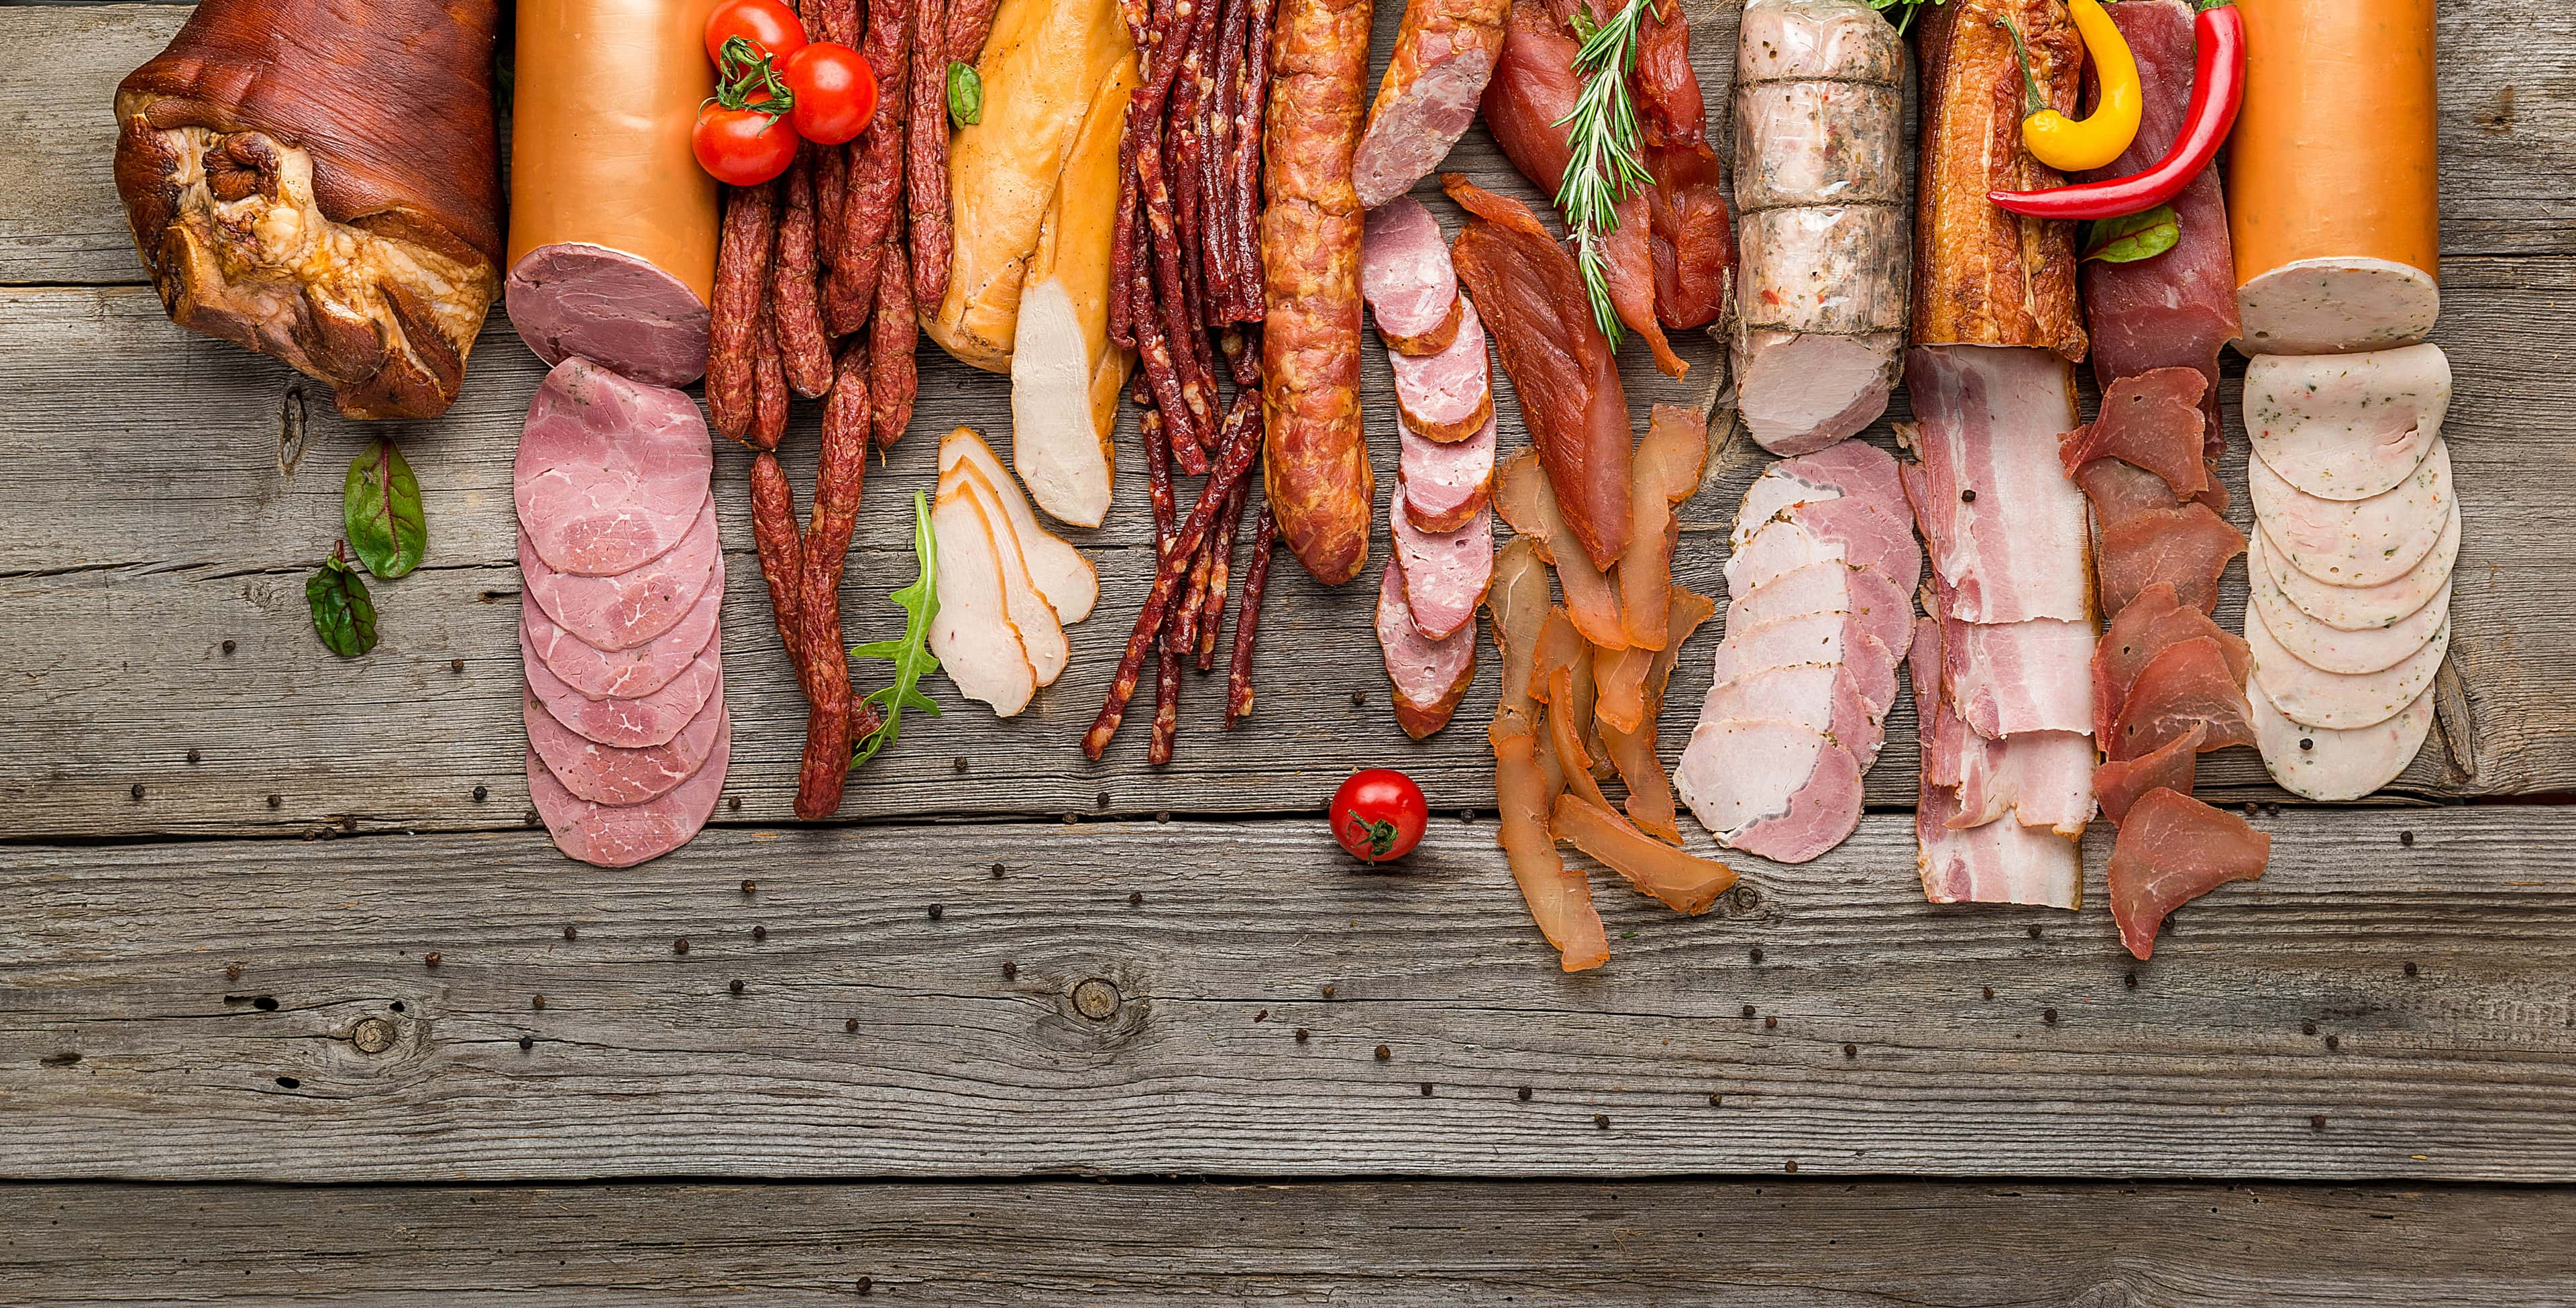 Assortment of processed cold meat products